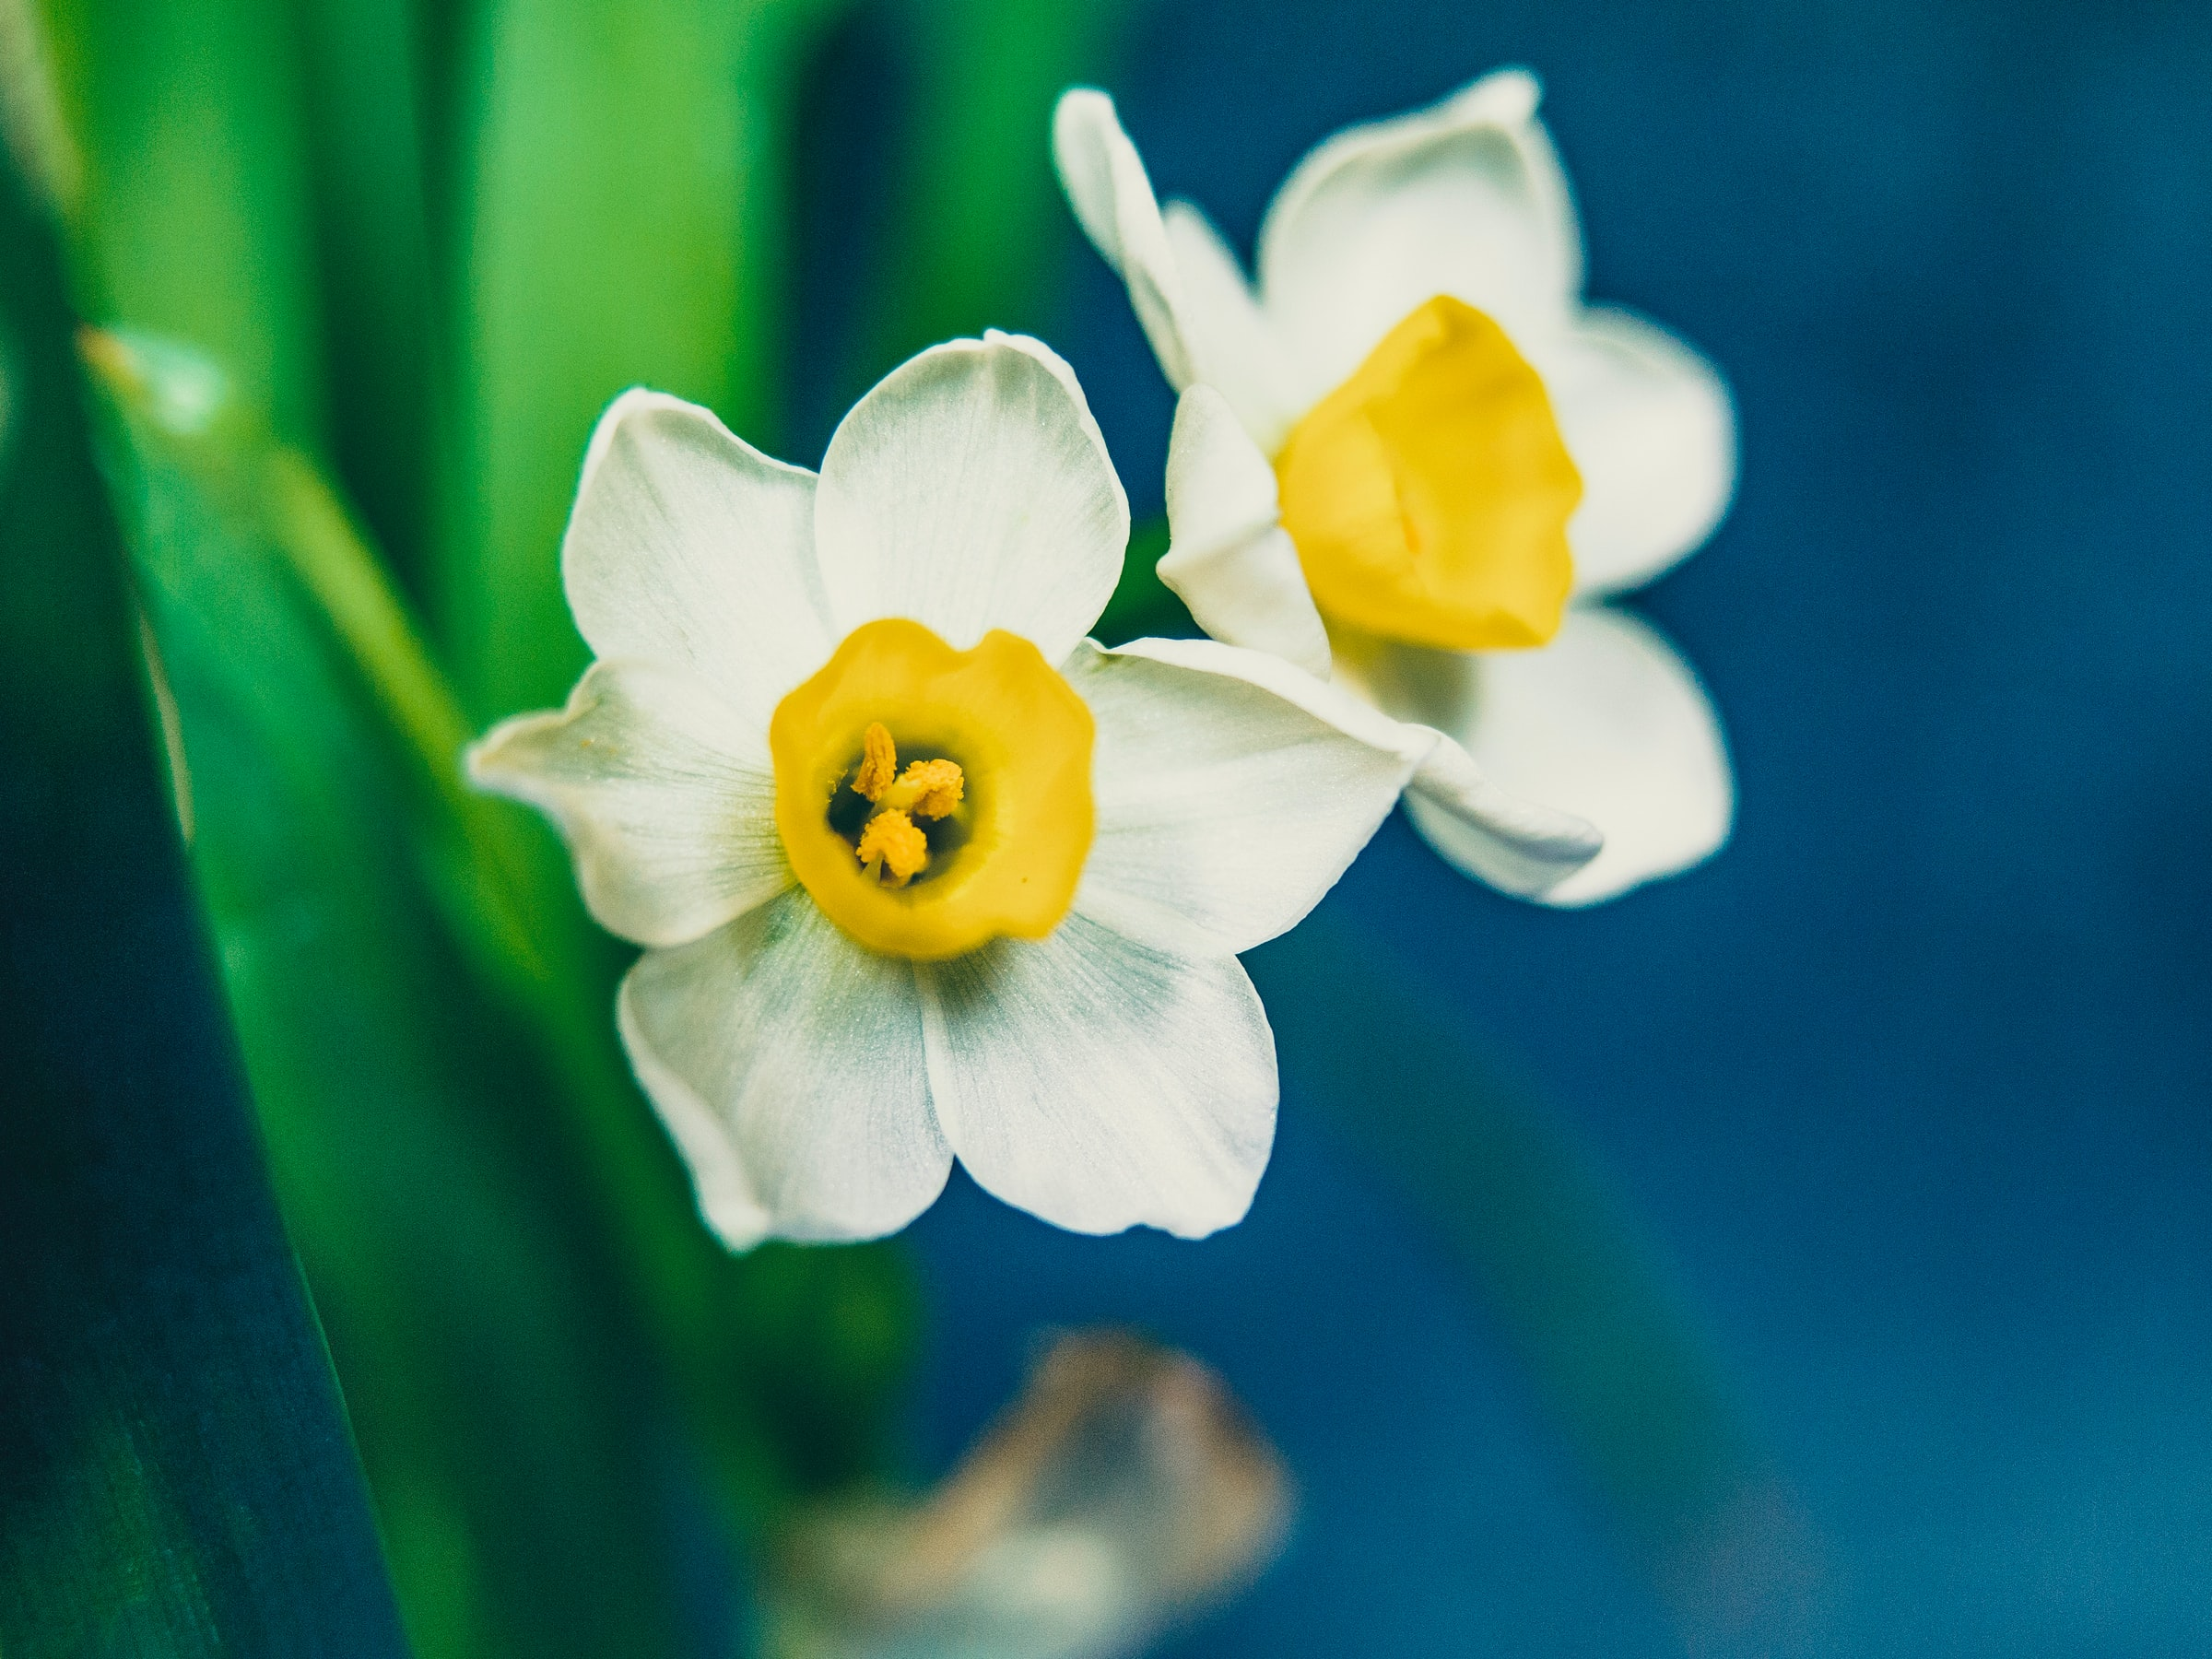 Daffodil Meaning